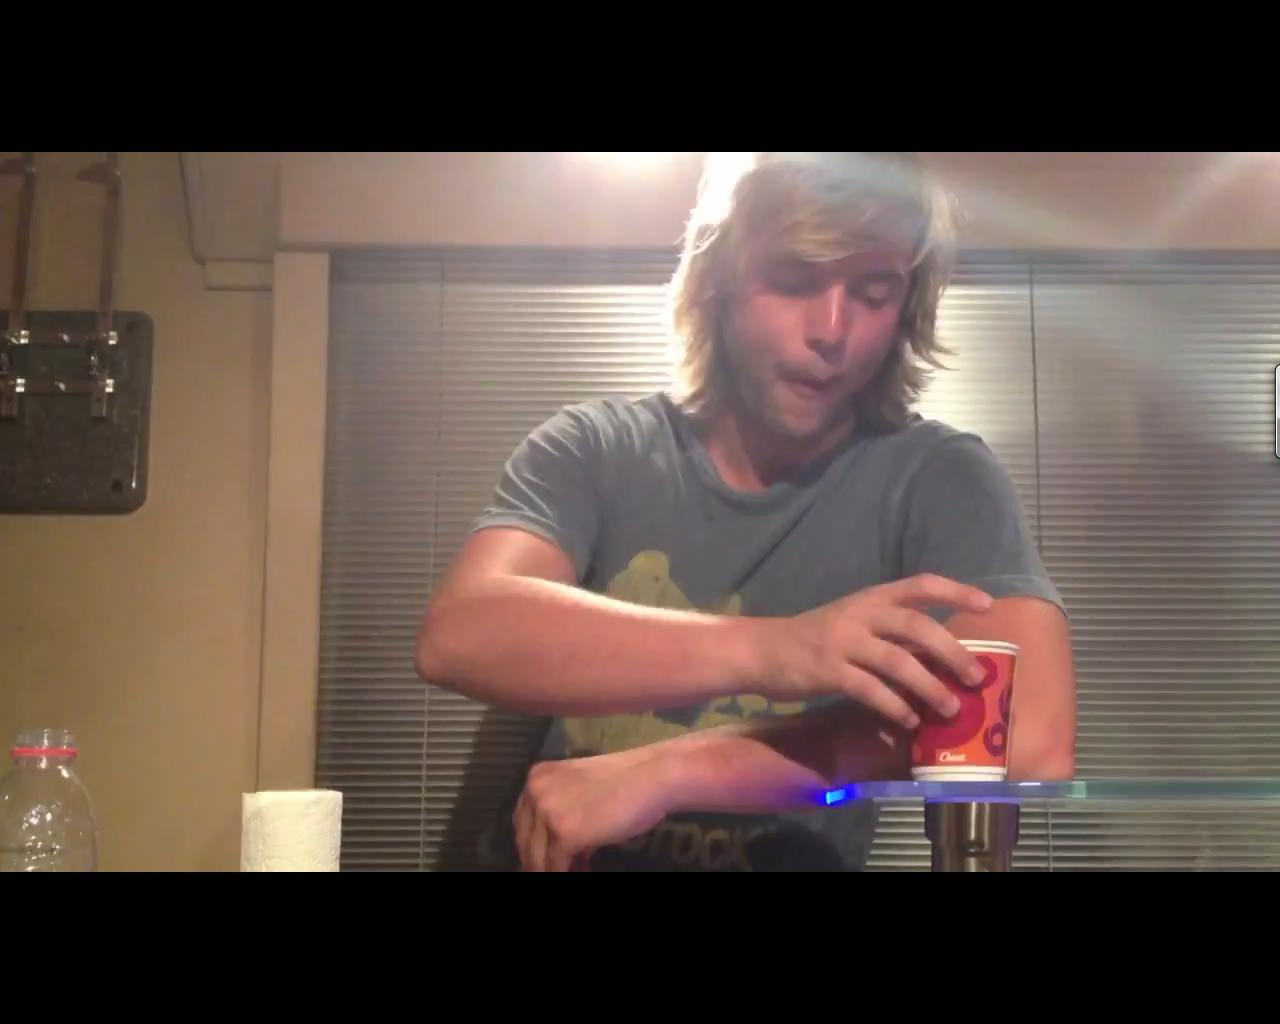 Screen Трофеи from Keith's Youtube video of him eating a sandwich.